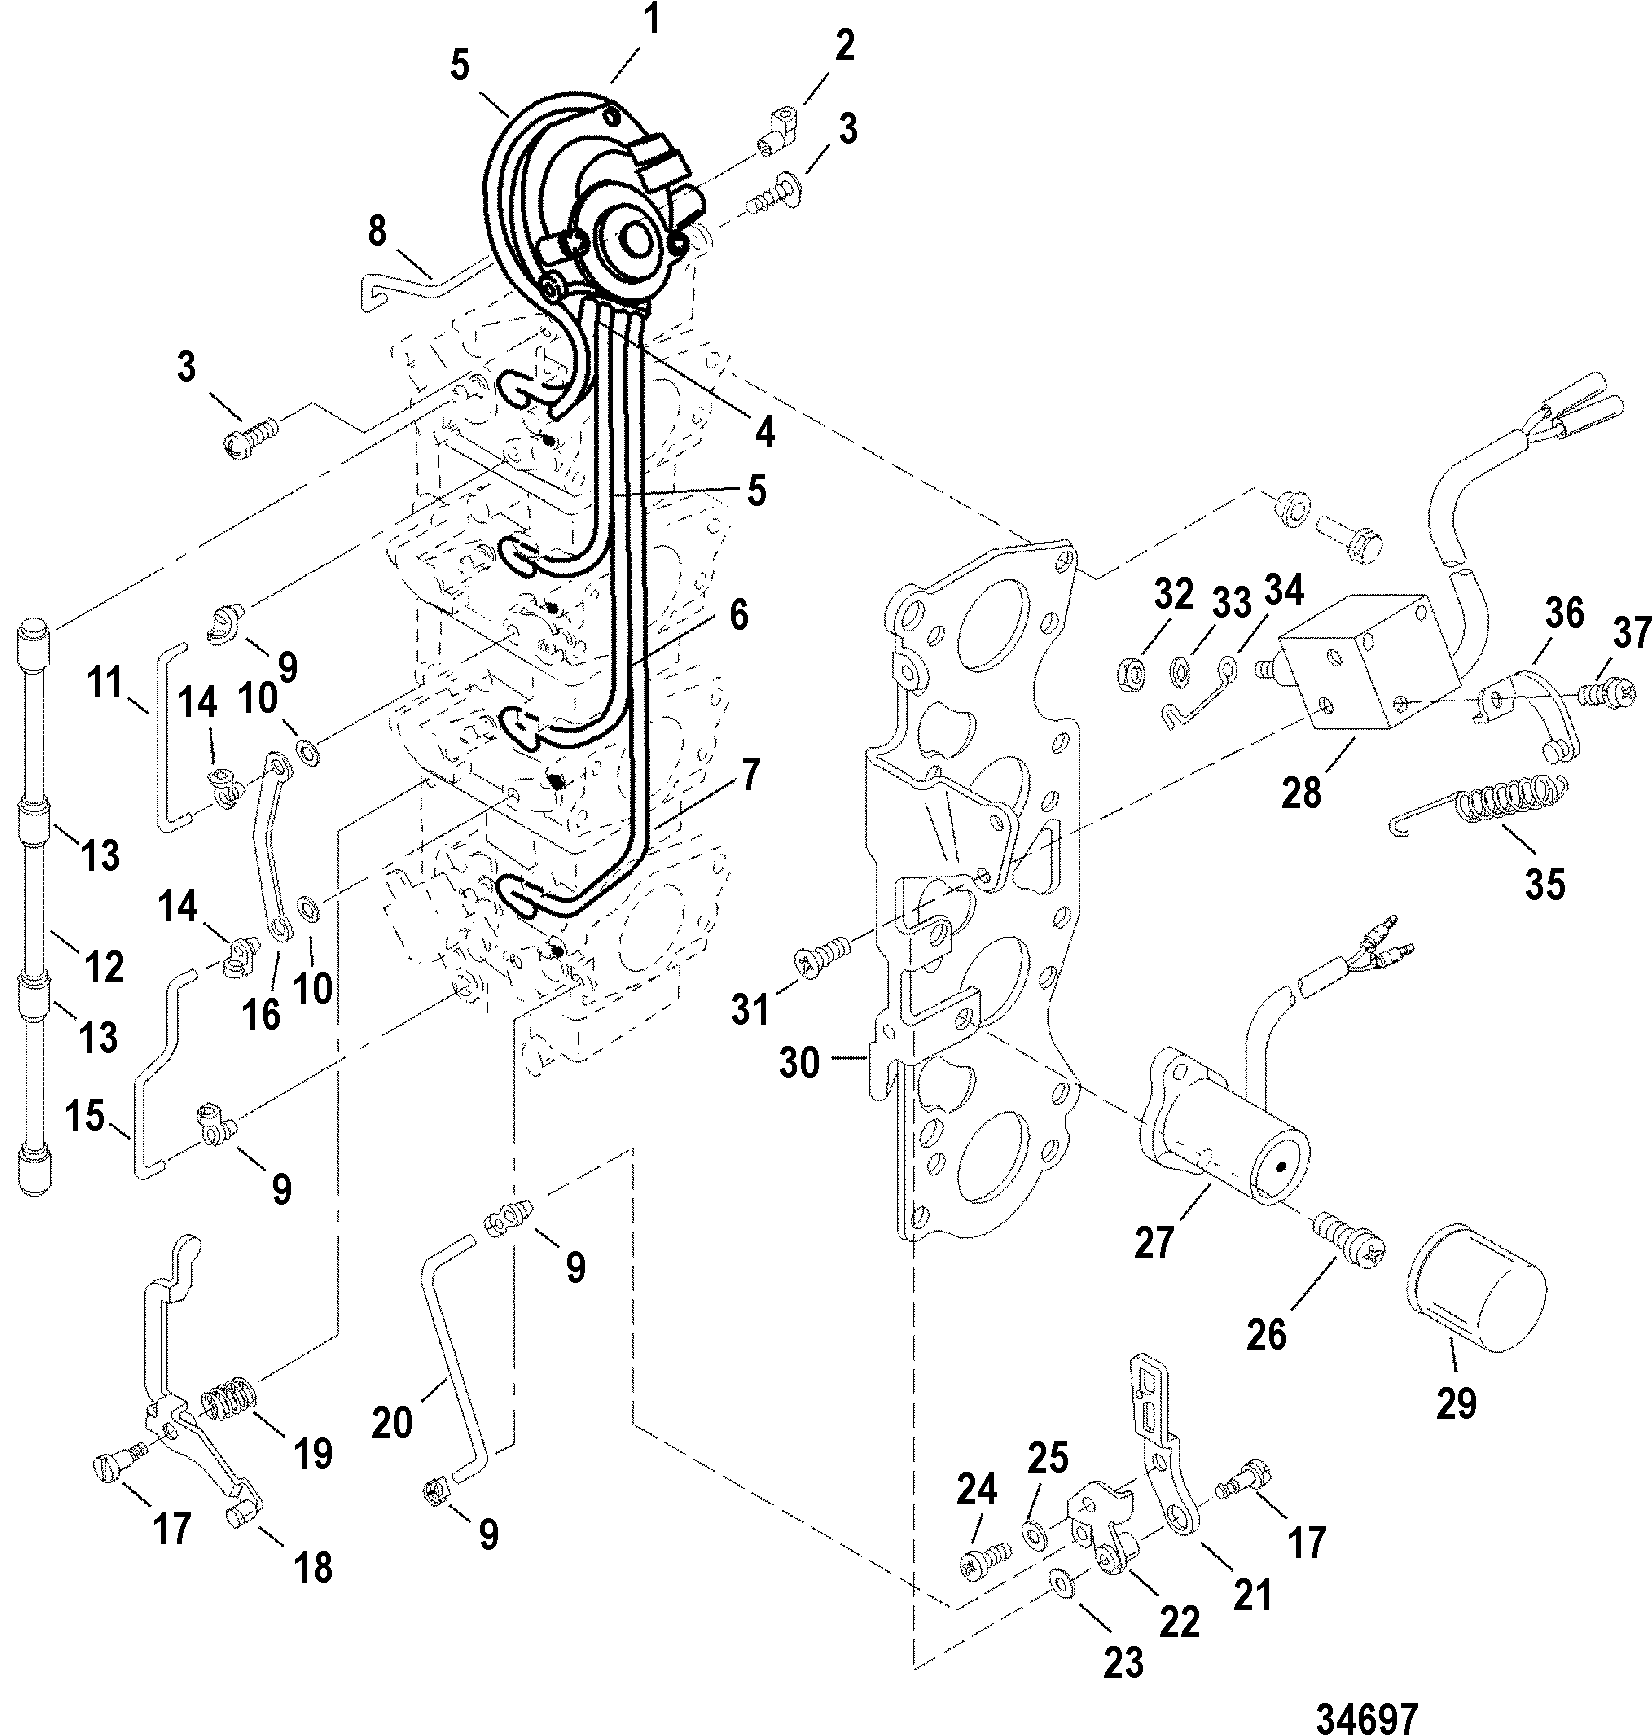 Tilt Trim Wiring Diagram In Addition Yamaha Outboard Trim Gauge Wiring